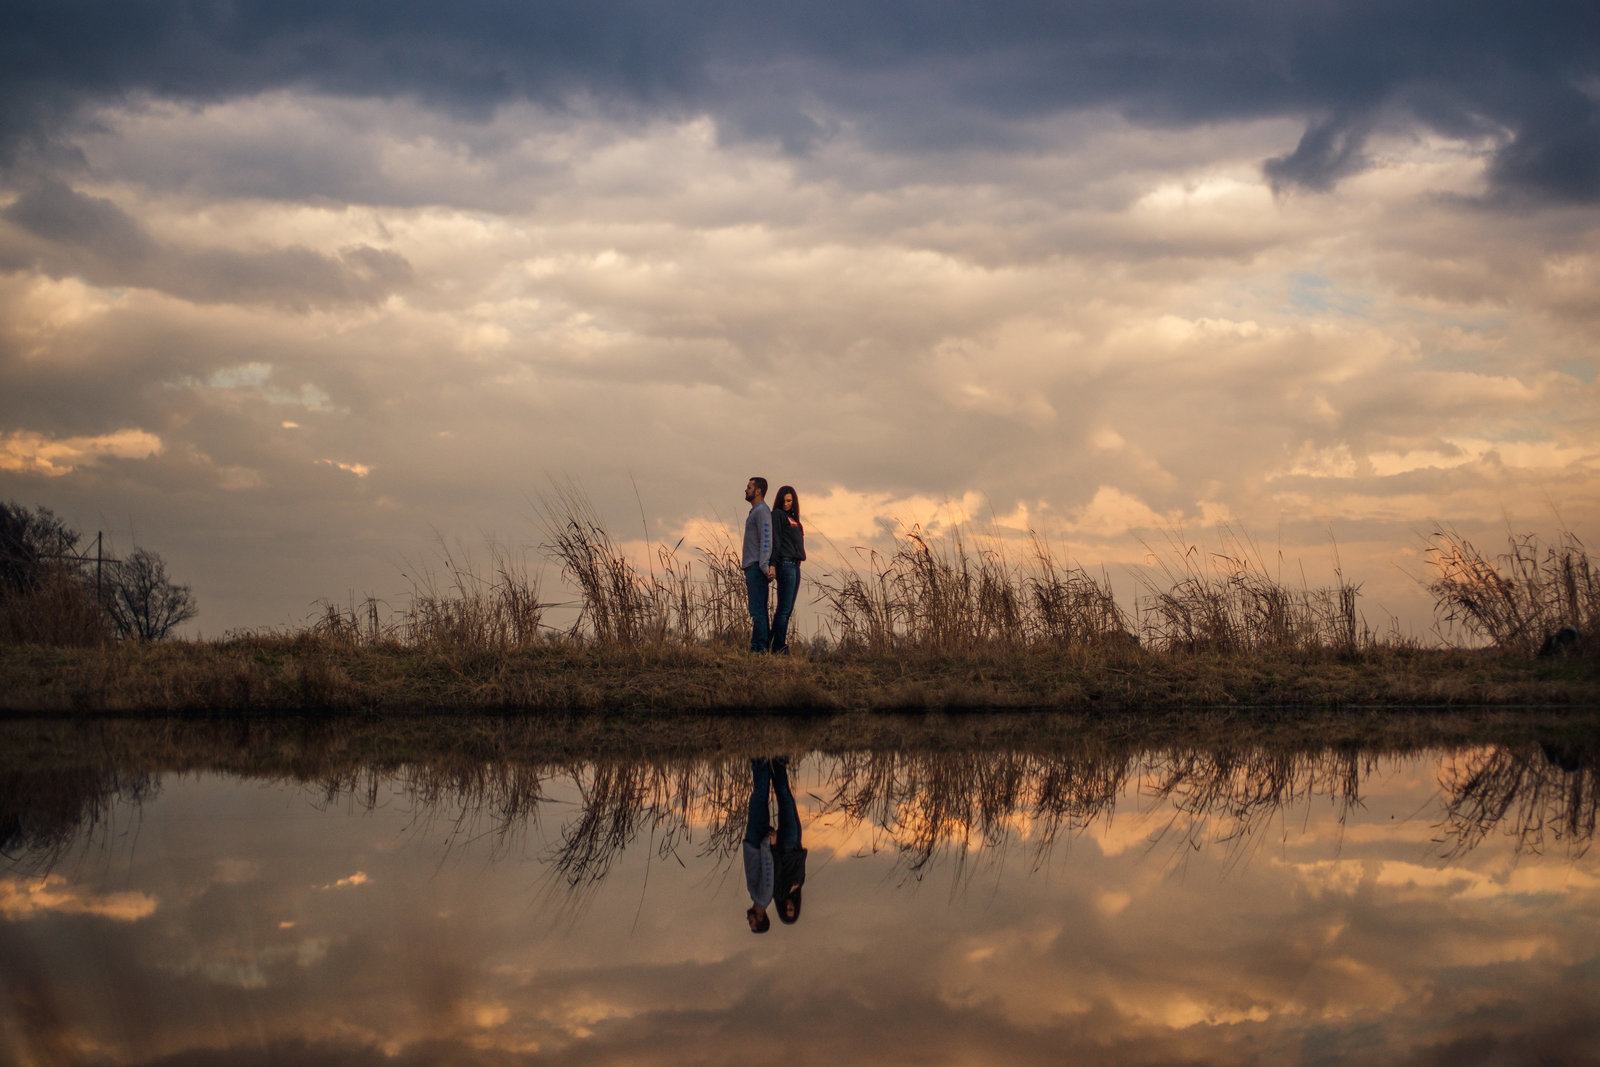 Vinson-Images-Fayetteville-Arkansas-NWA-Wedding-Photographer-kansas-reflection